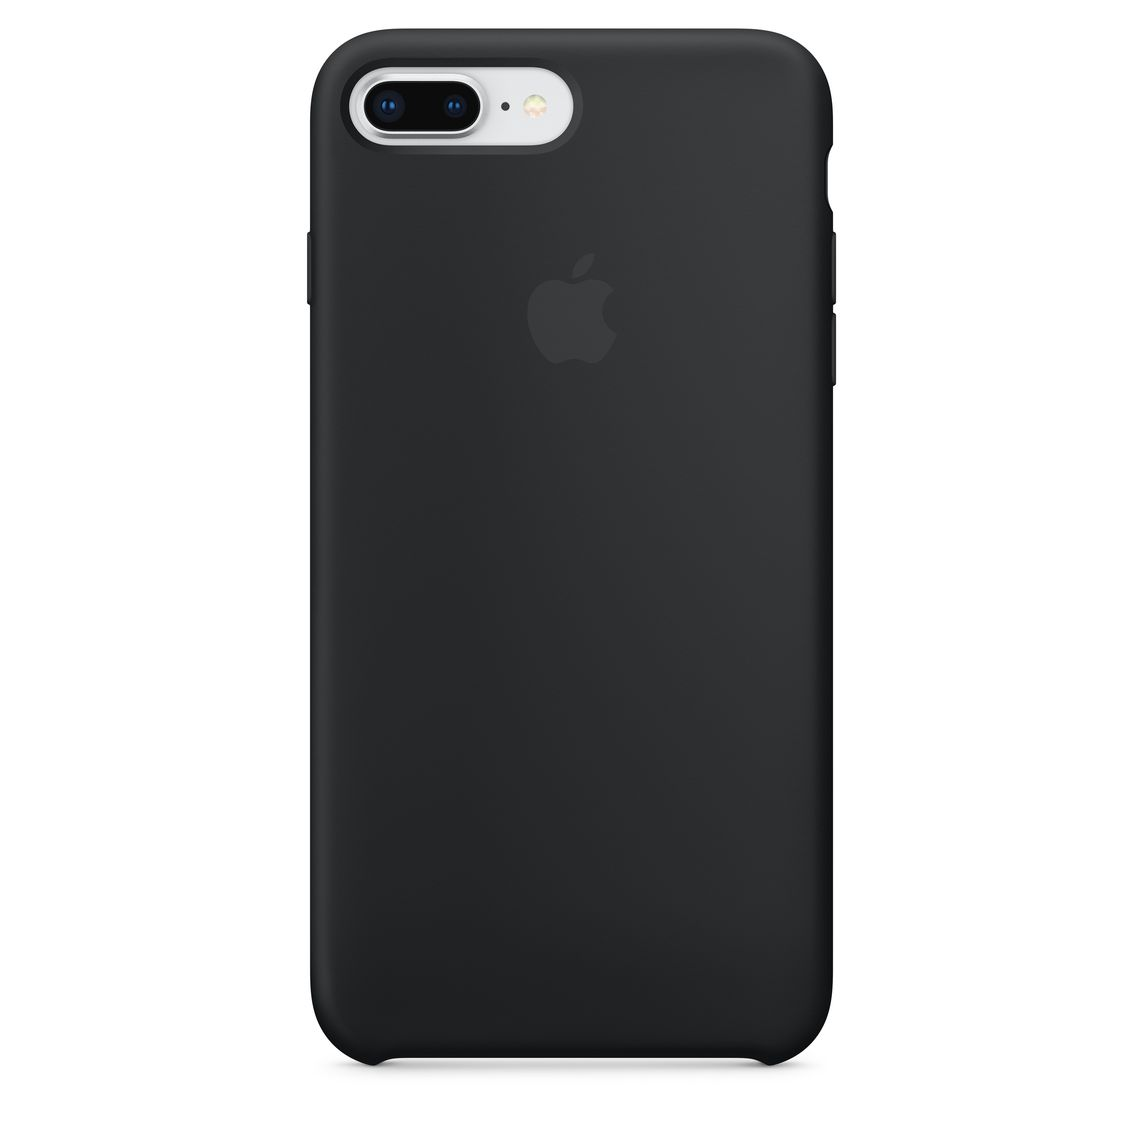 new product 9e907 0089c iPhone 8 Plus / 7 Plus Silicone Case - Black